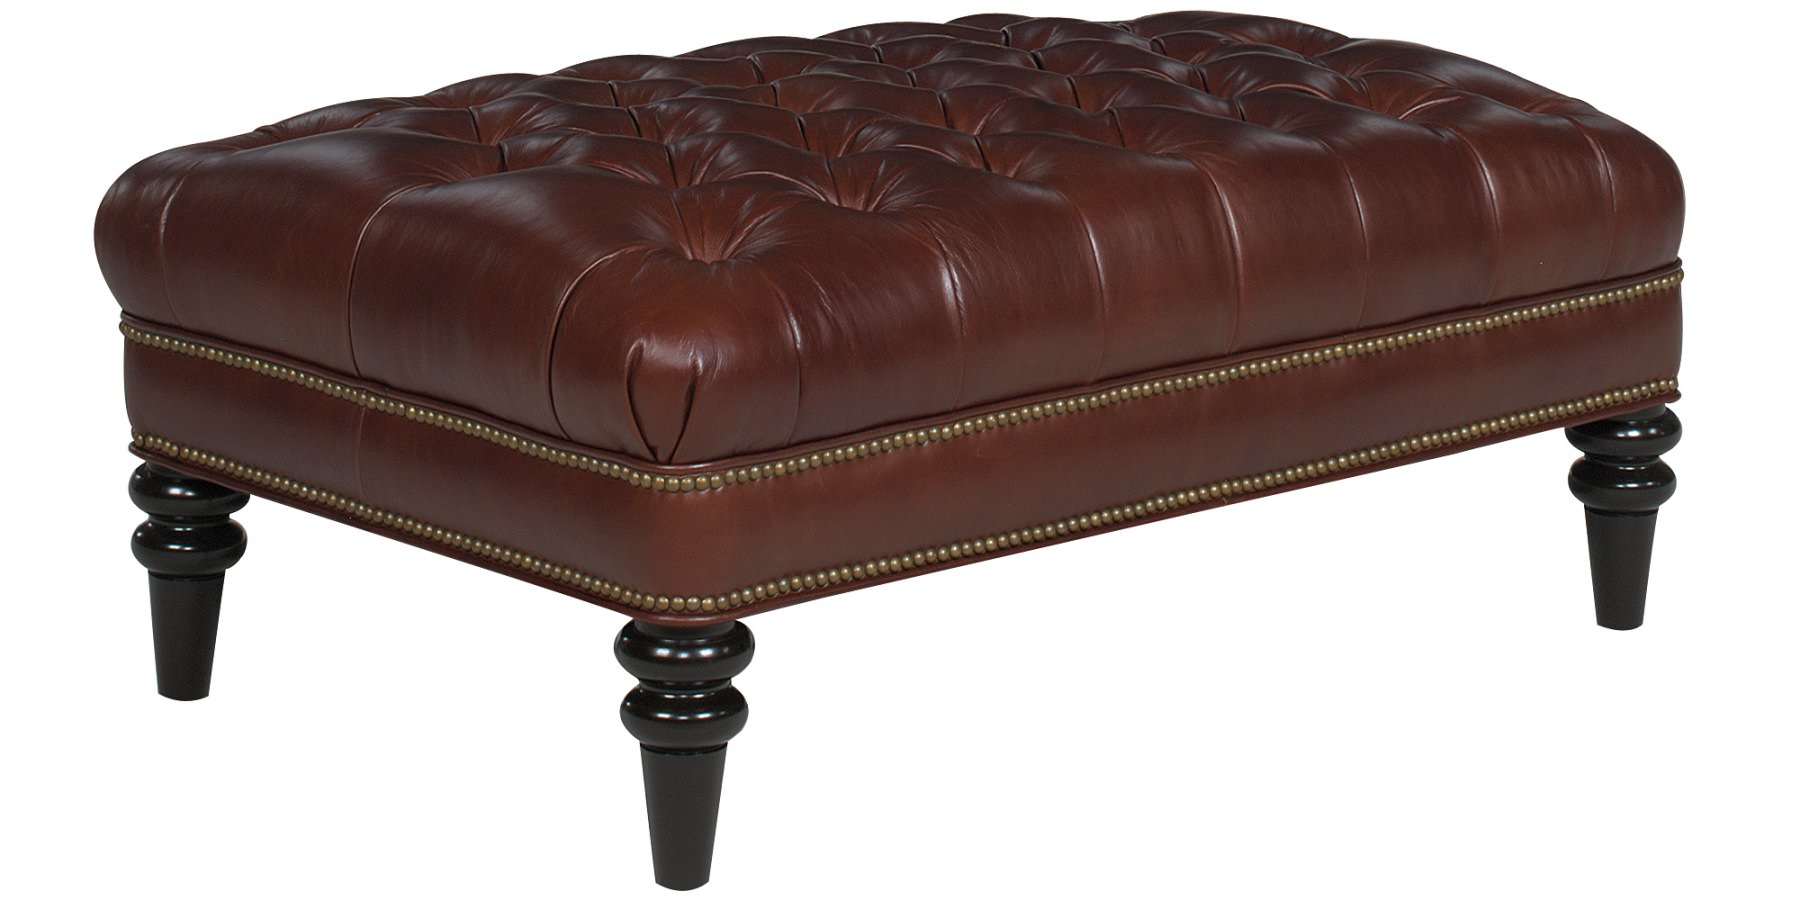 Upholstered Tufted Bench Coffee Table With Nailhead Trim